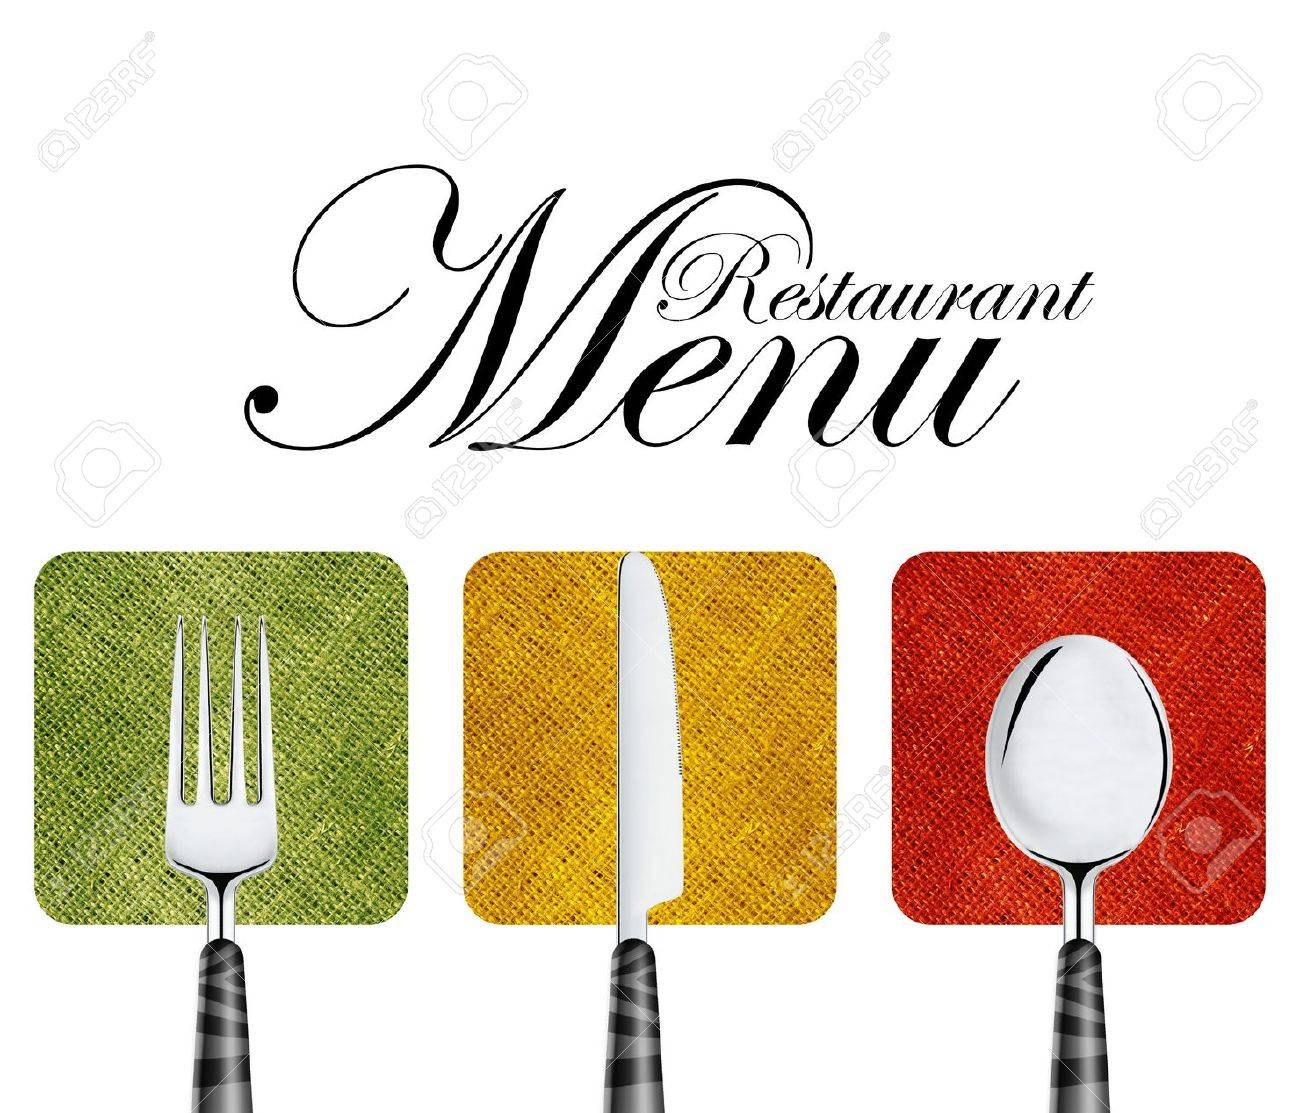 Restaurant menu cover design with knife, spoon and fork. Stock Photo - 13659648